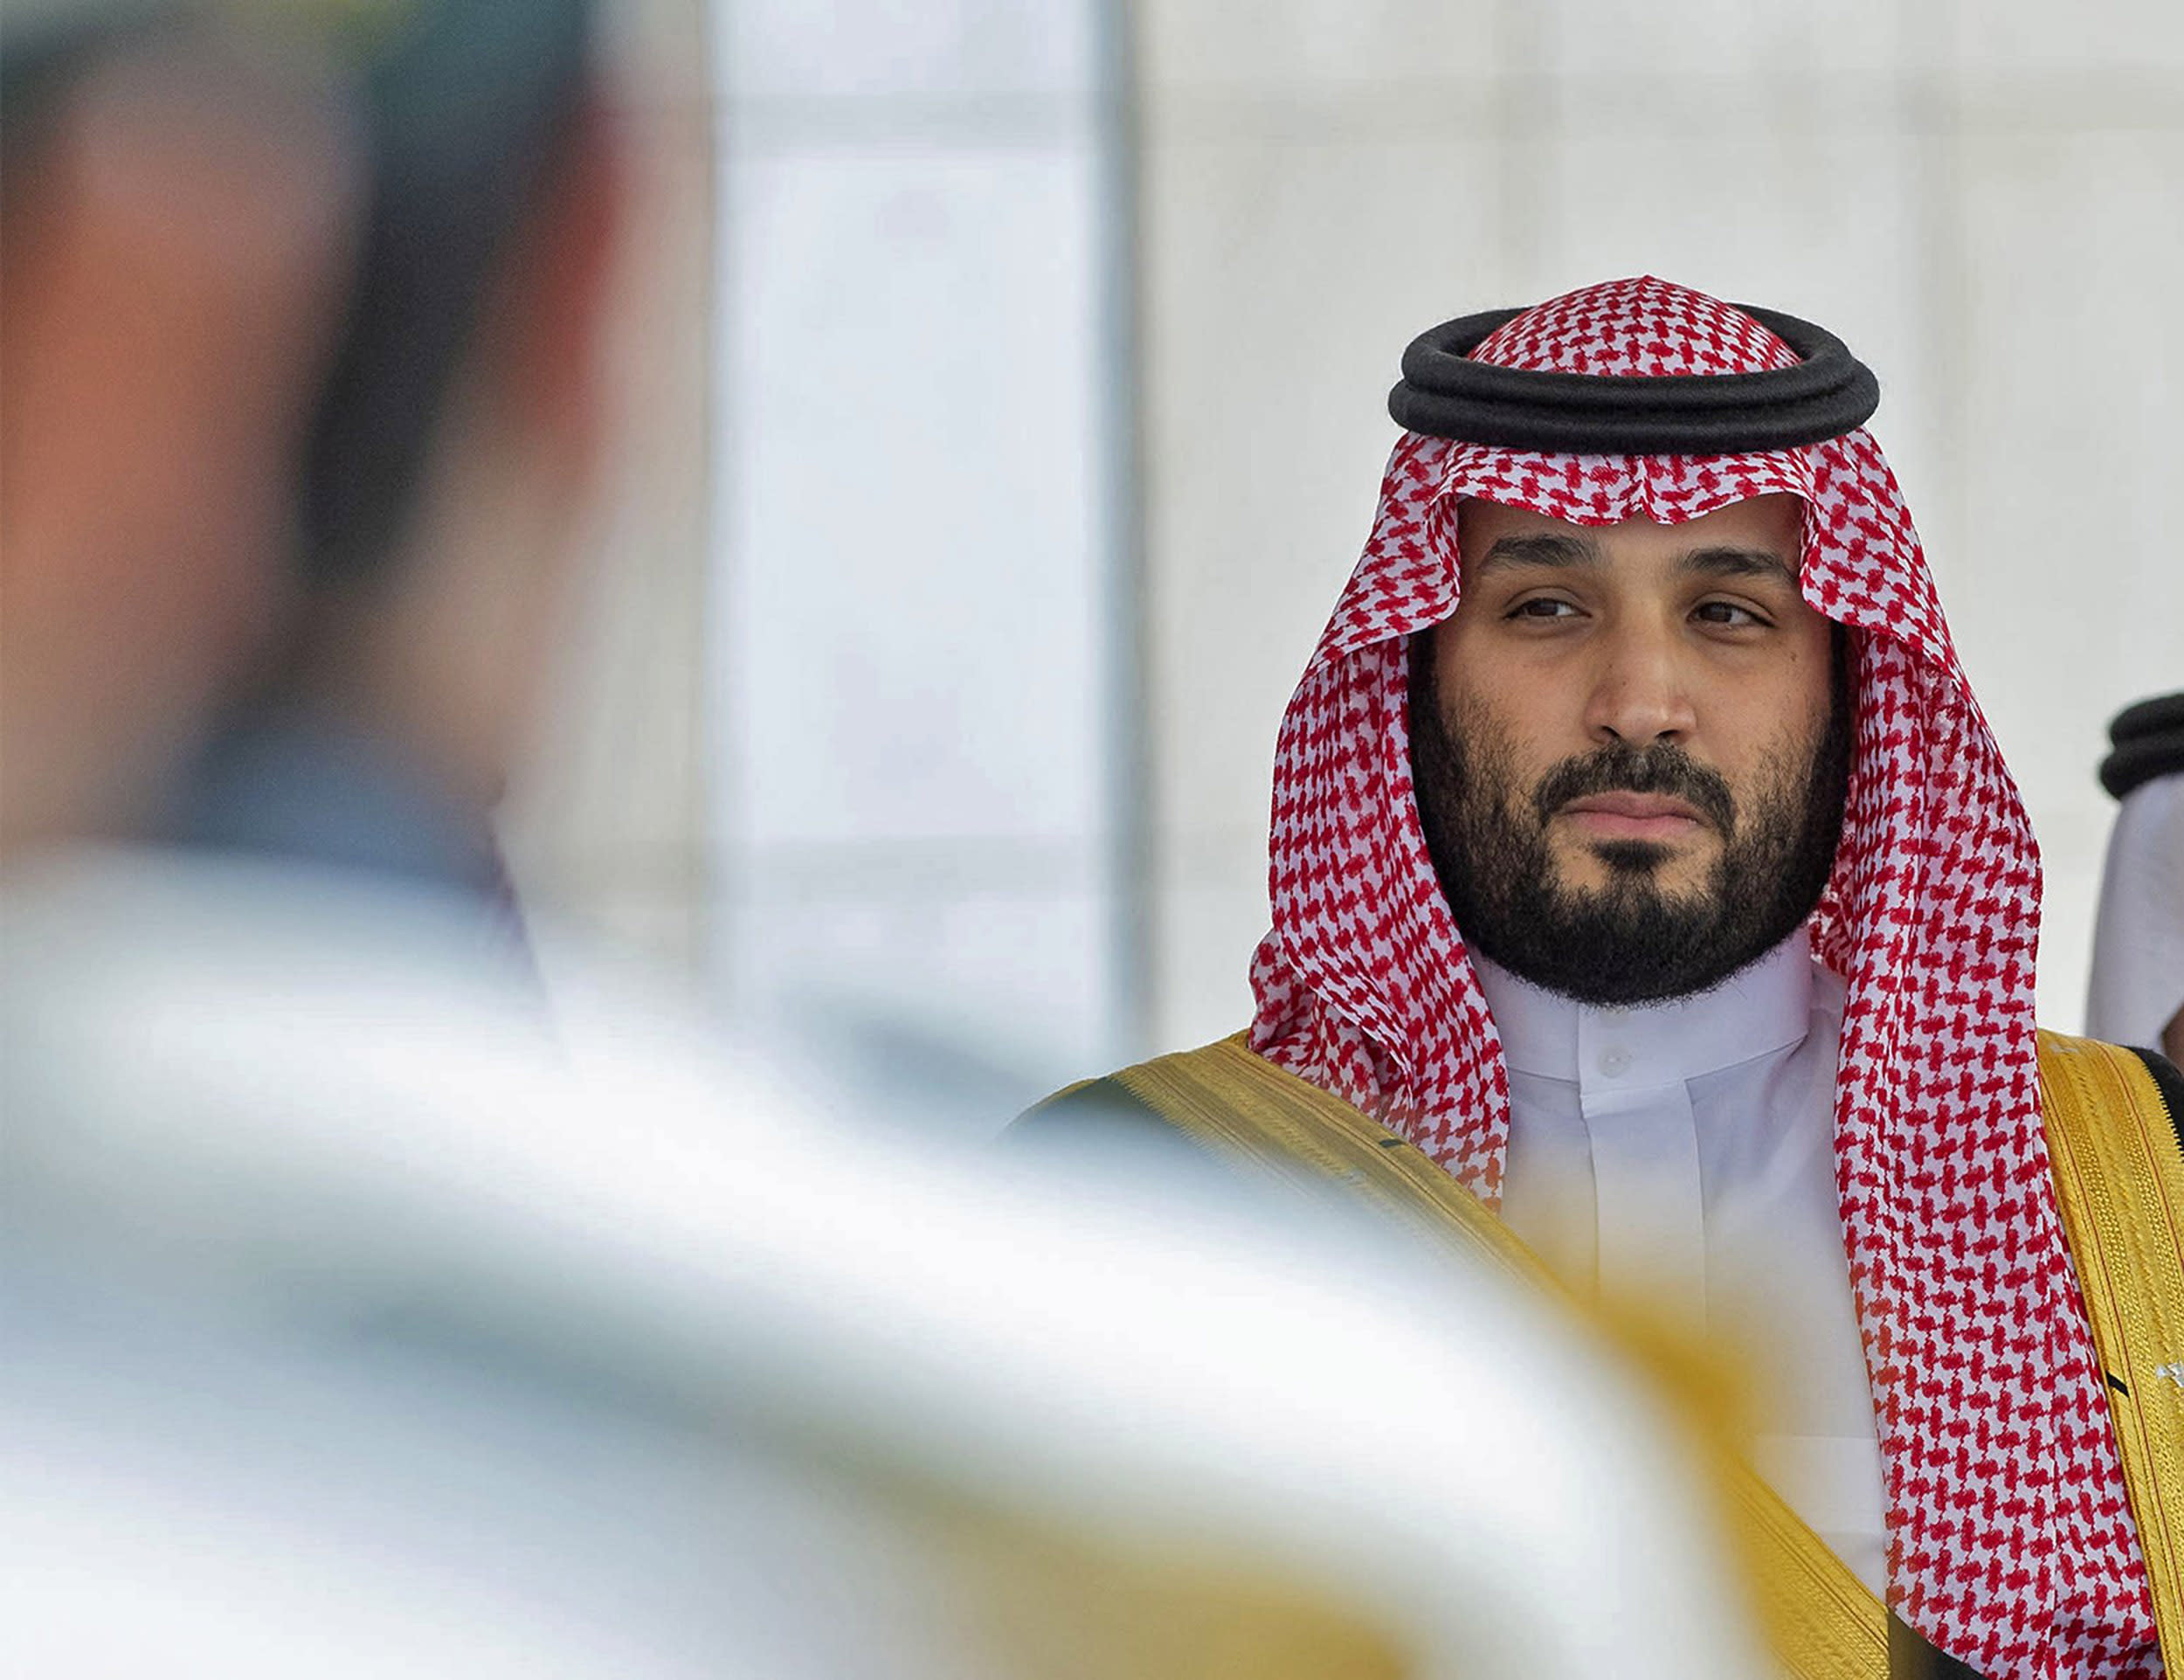 'Record number' of people executed in Saudi Arabia in 2019